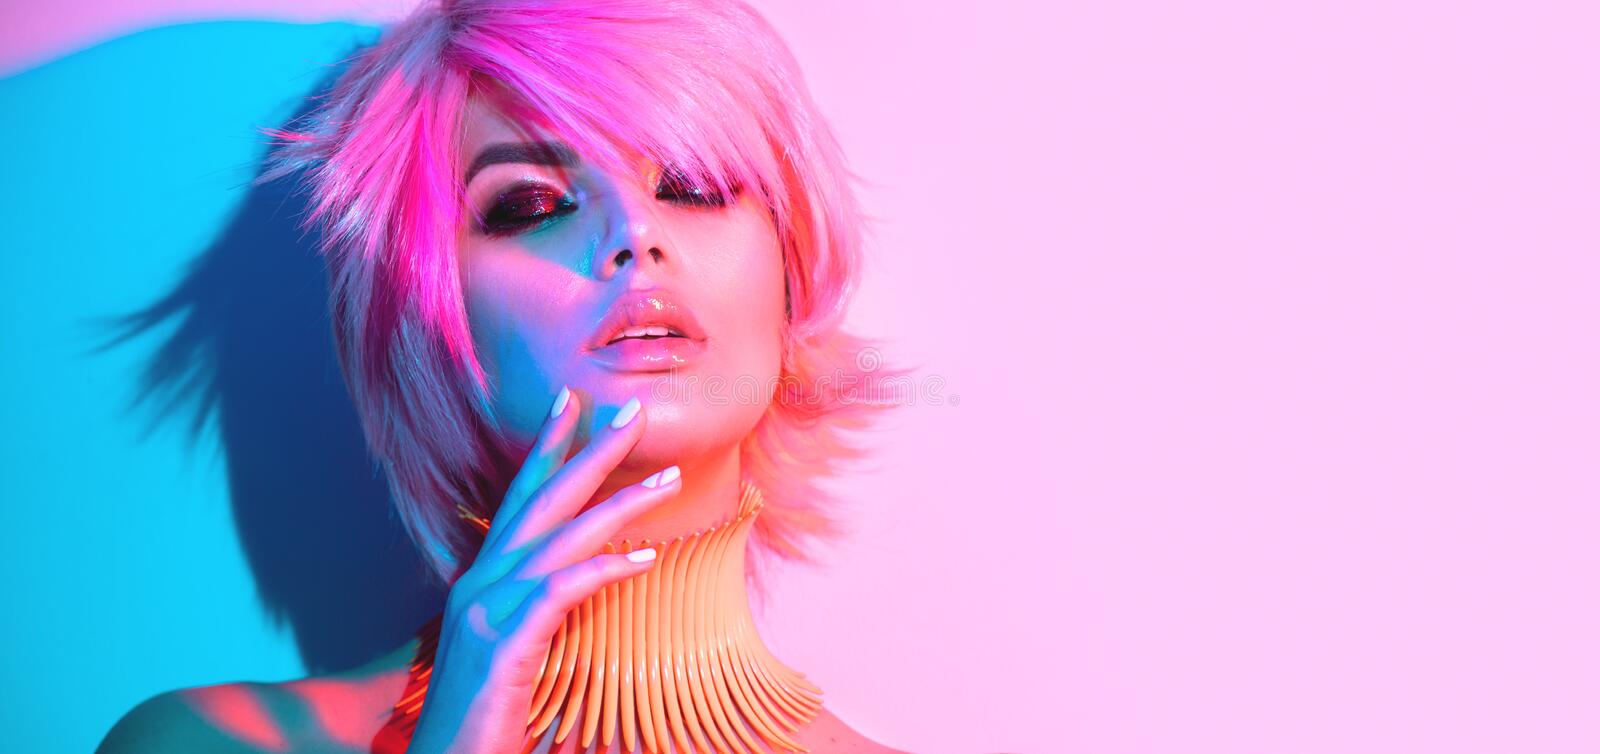 Fashion model woman in colorful bright lights royalty free stock images